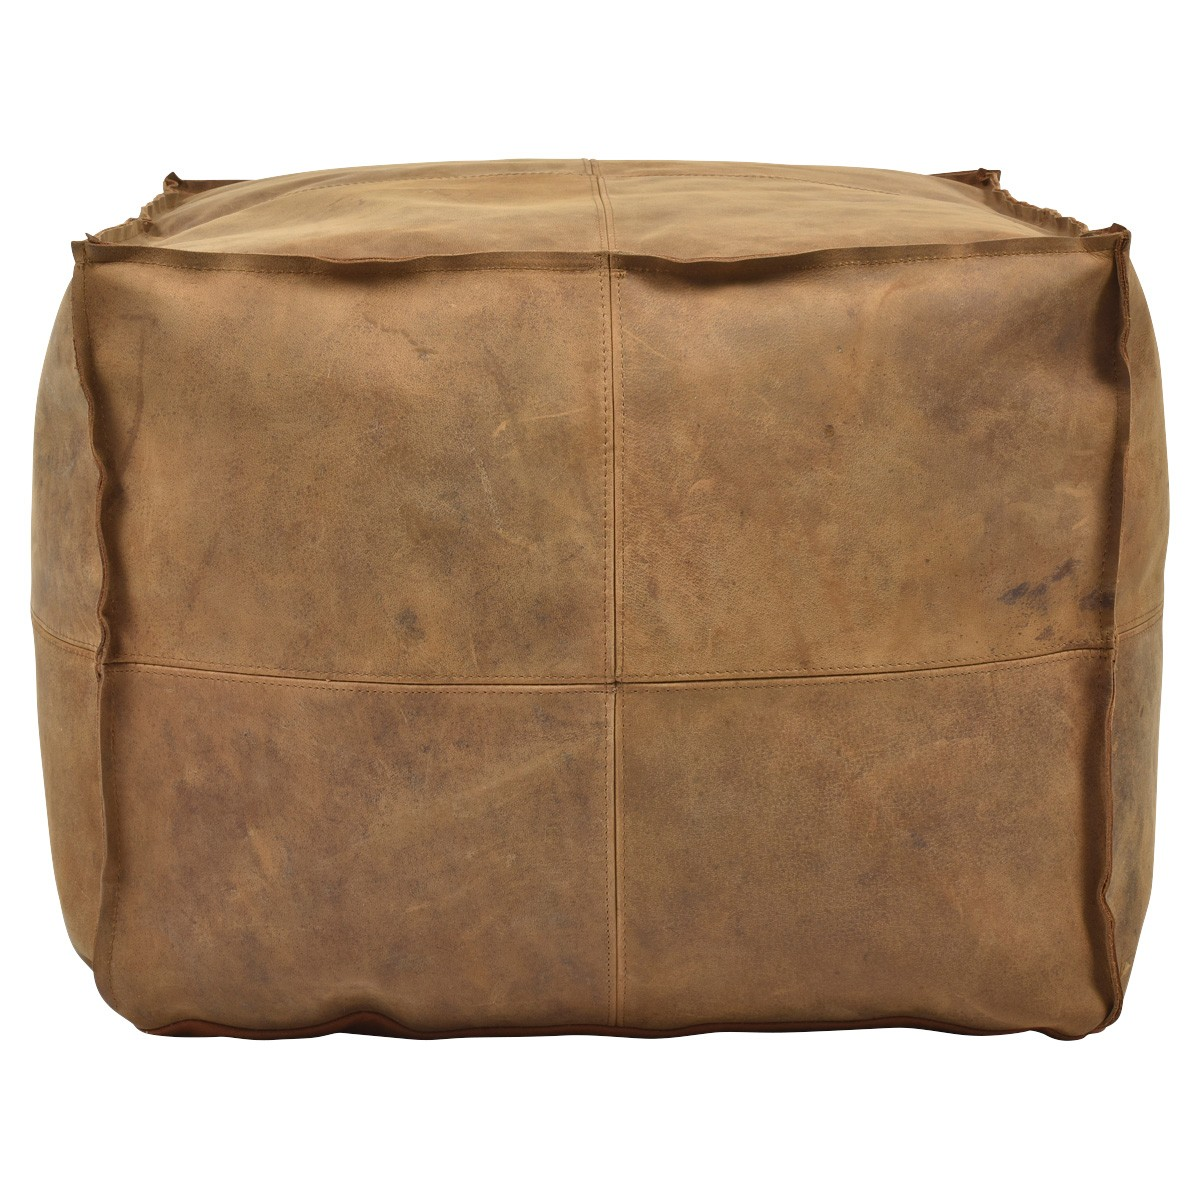 Napa Leather Square Bean Bag Ottoman, Tan